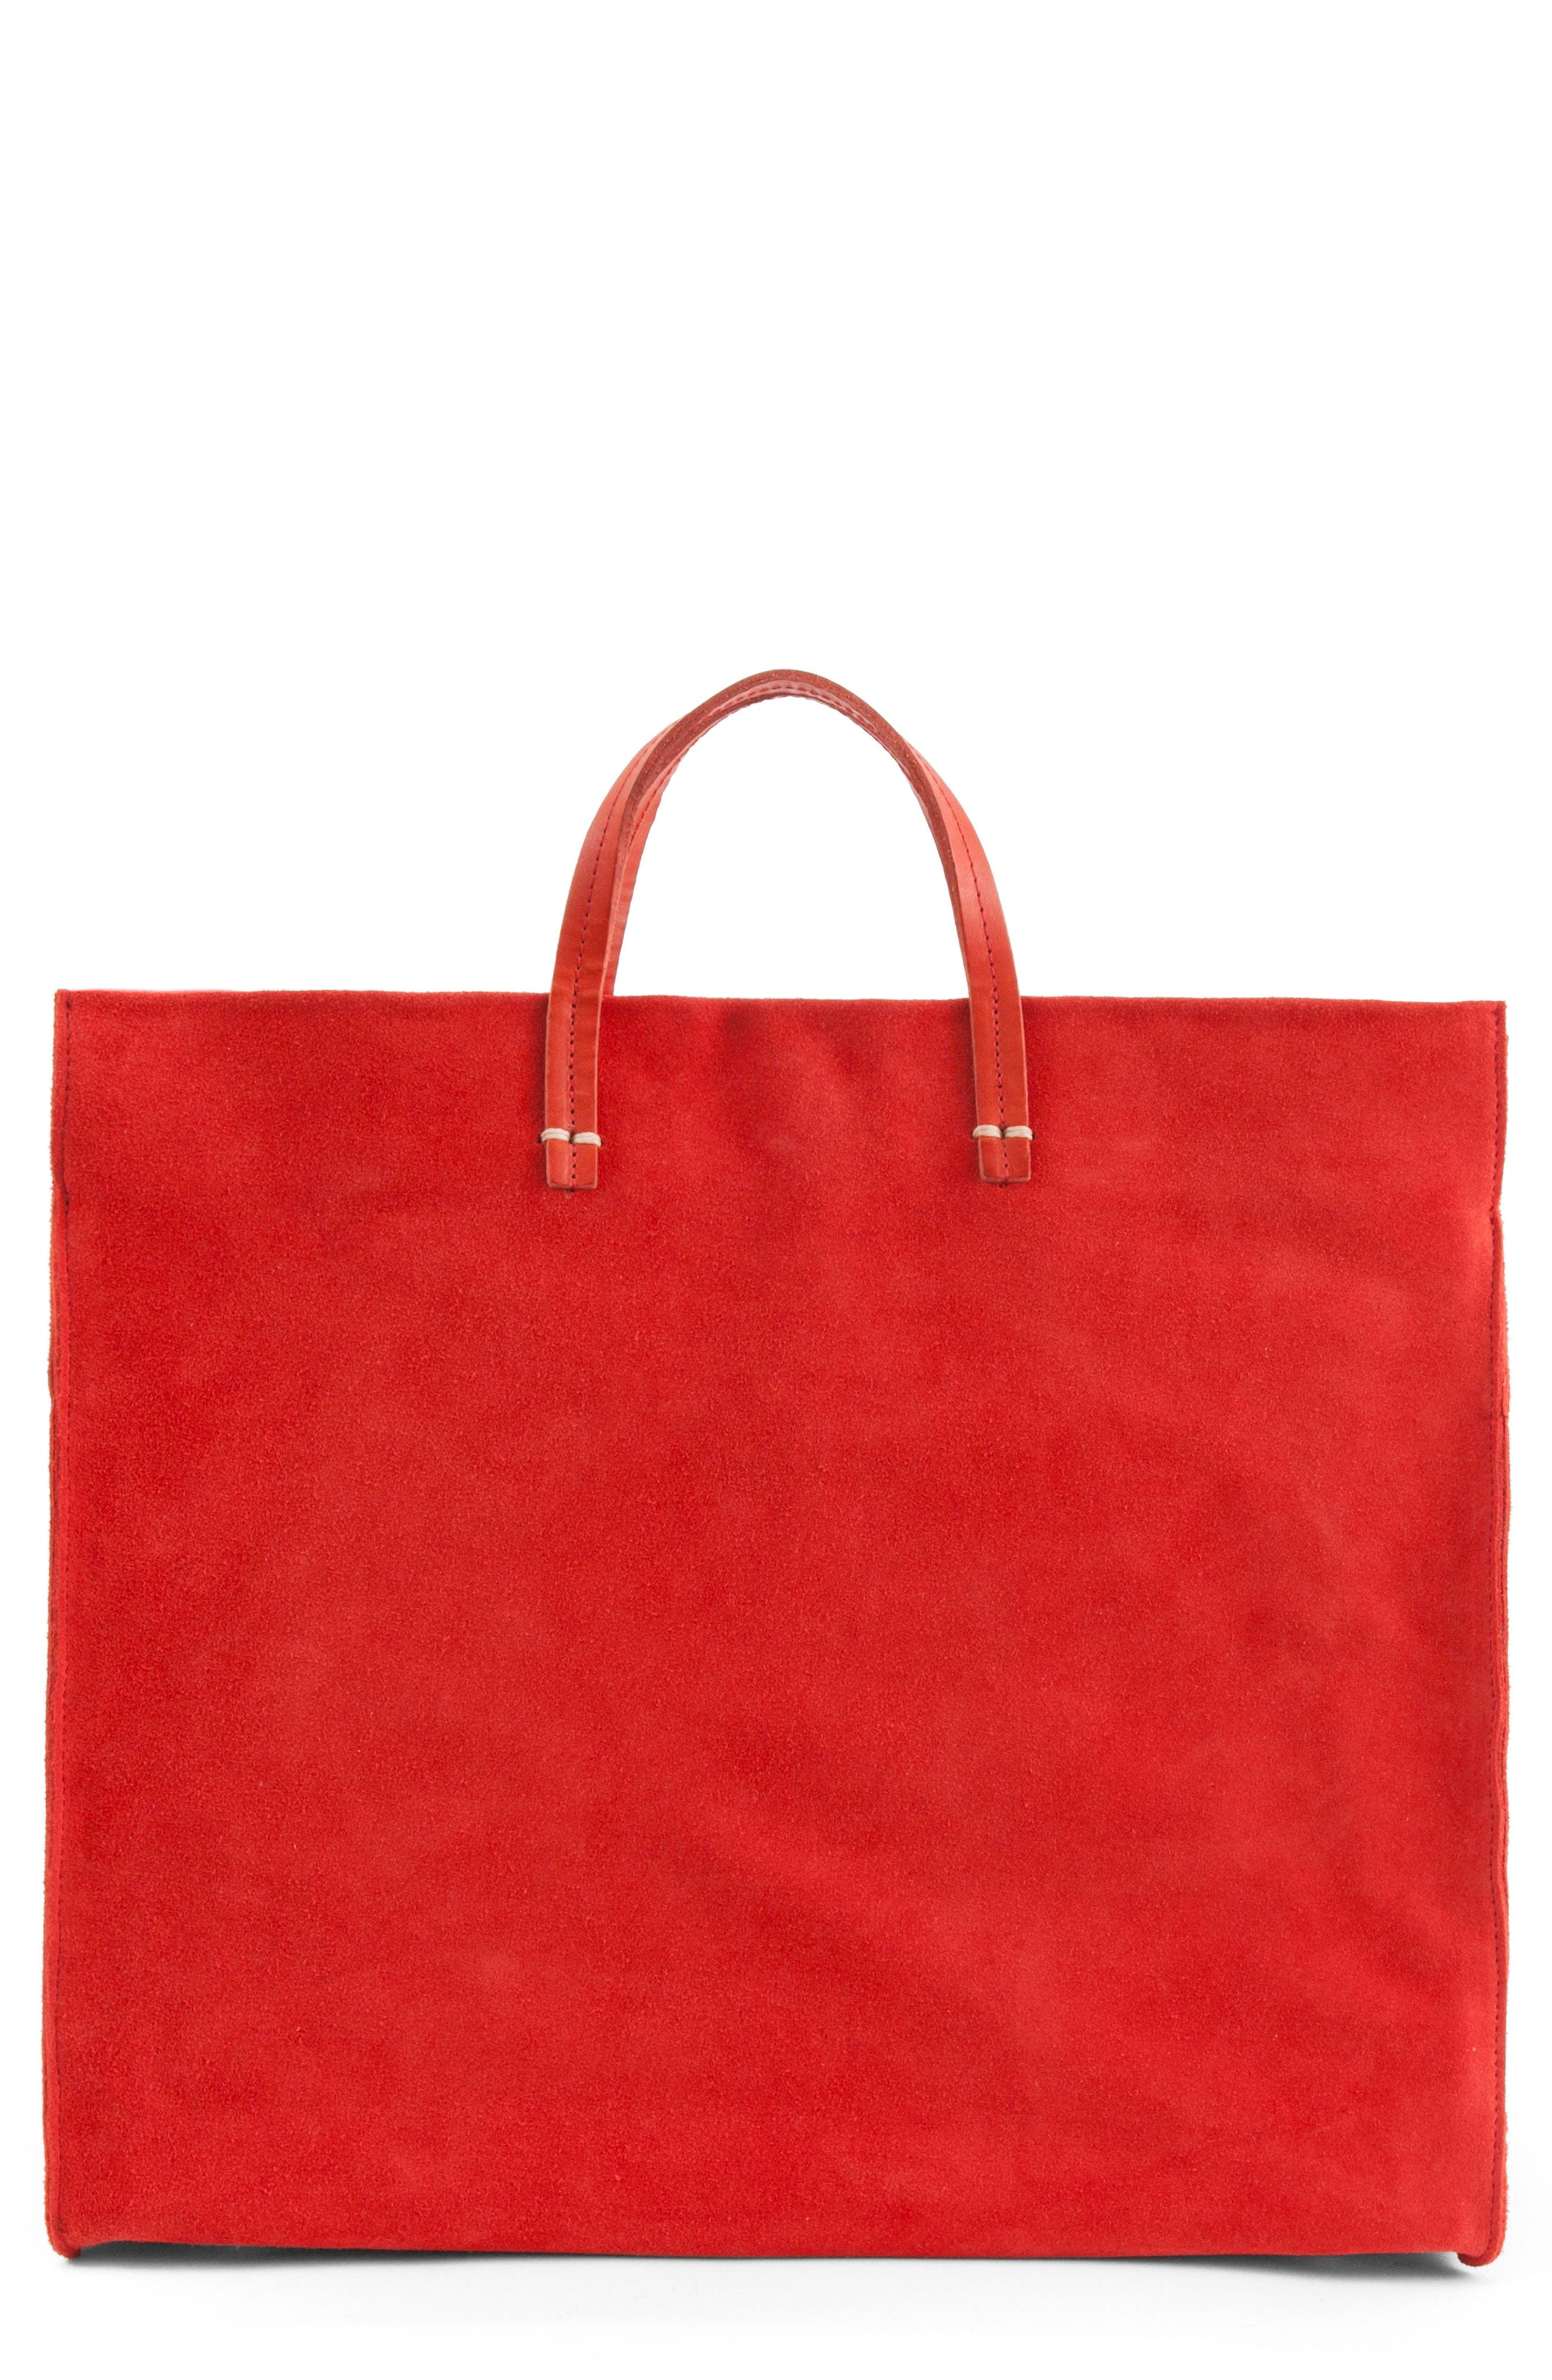 Maison Simple Suede Tote,                             Main thumbnail 1, color,                             Red Suede